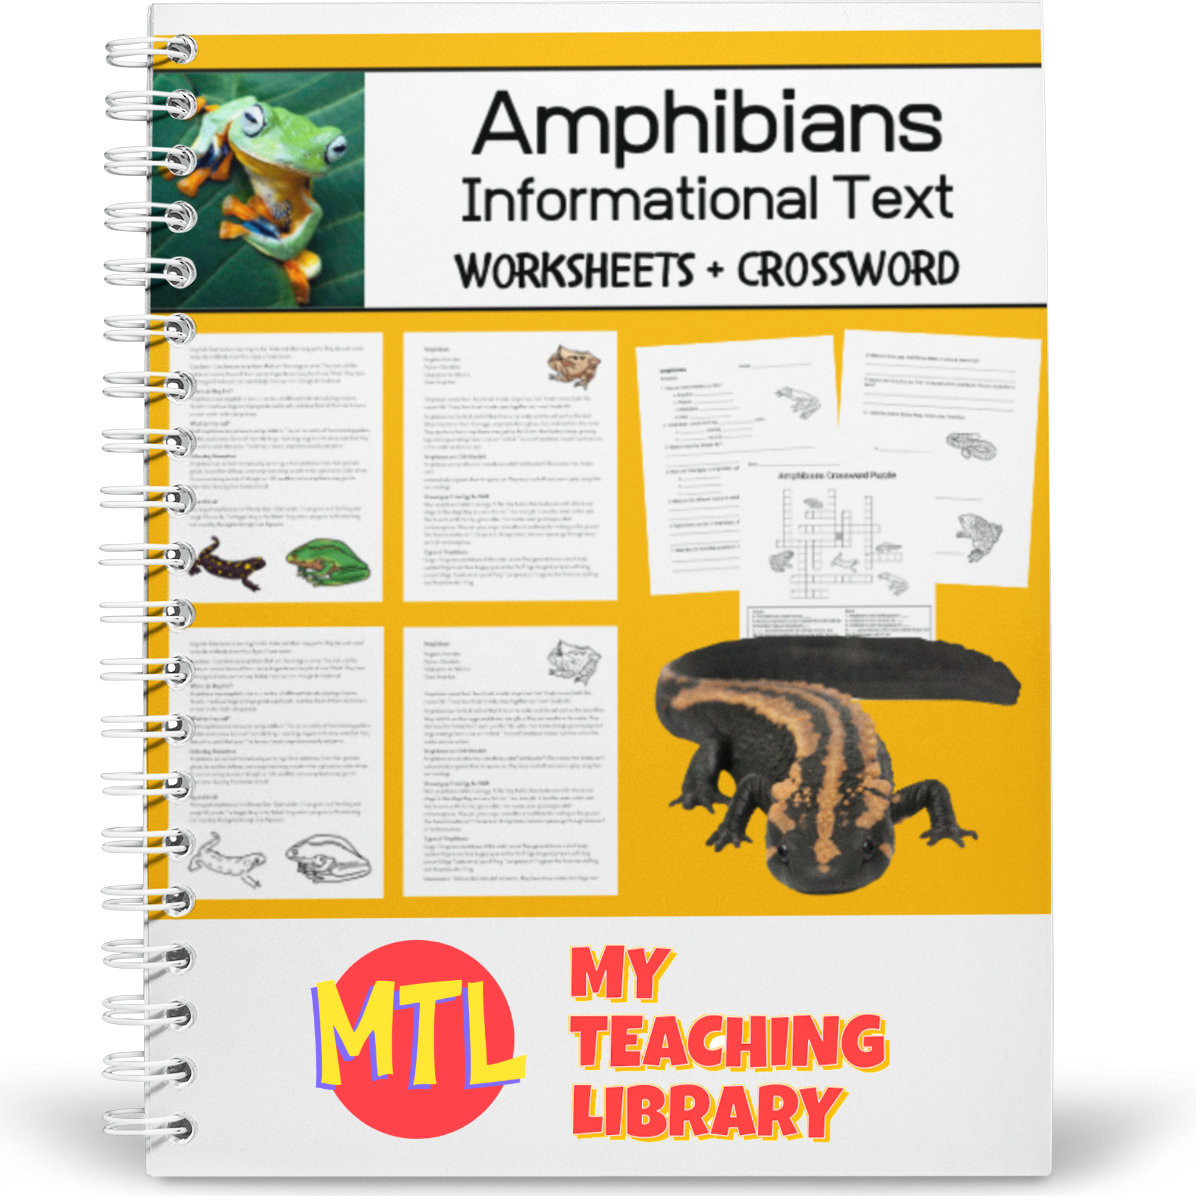 hight resolution of Learning About Amphibians   Informational Text - Worksheets - Crossword  Puzzle - My Teaching Library   CHSH-Teach LLC